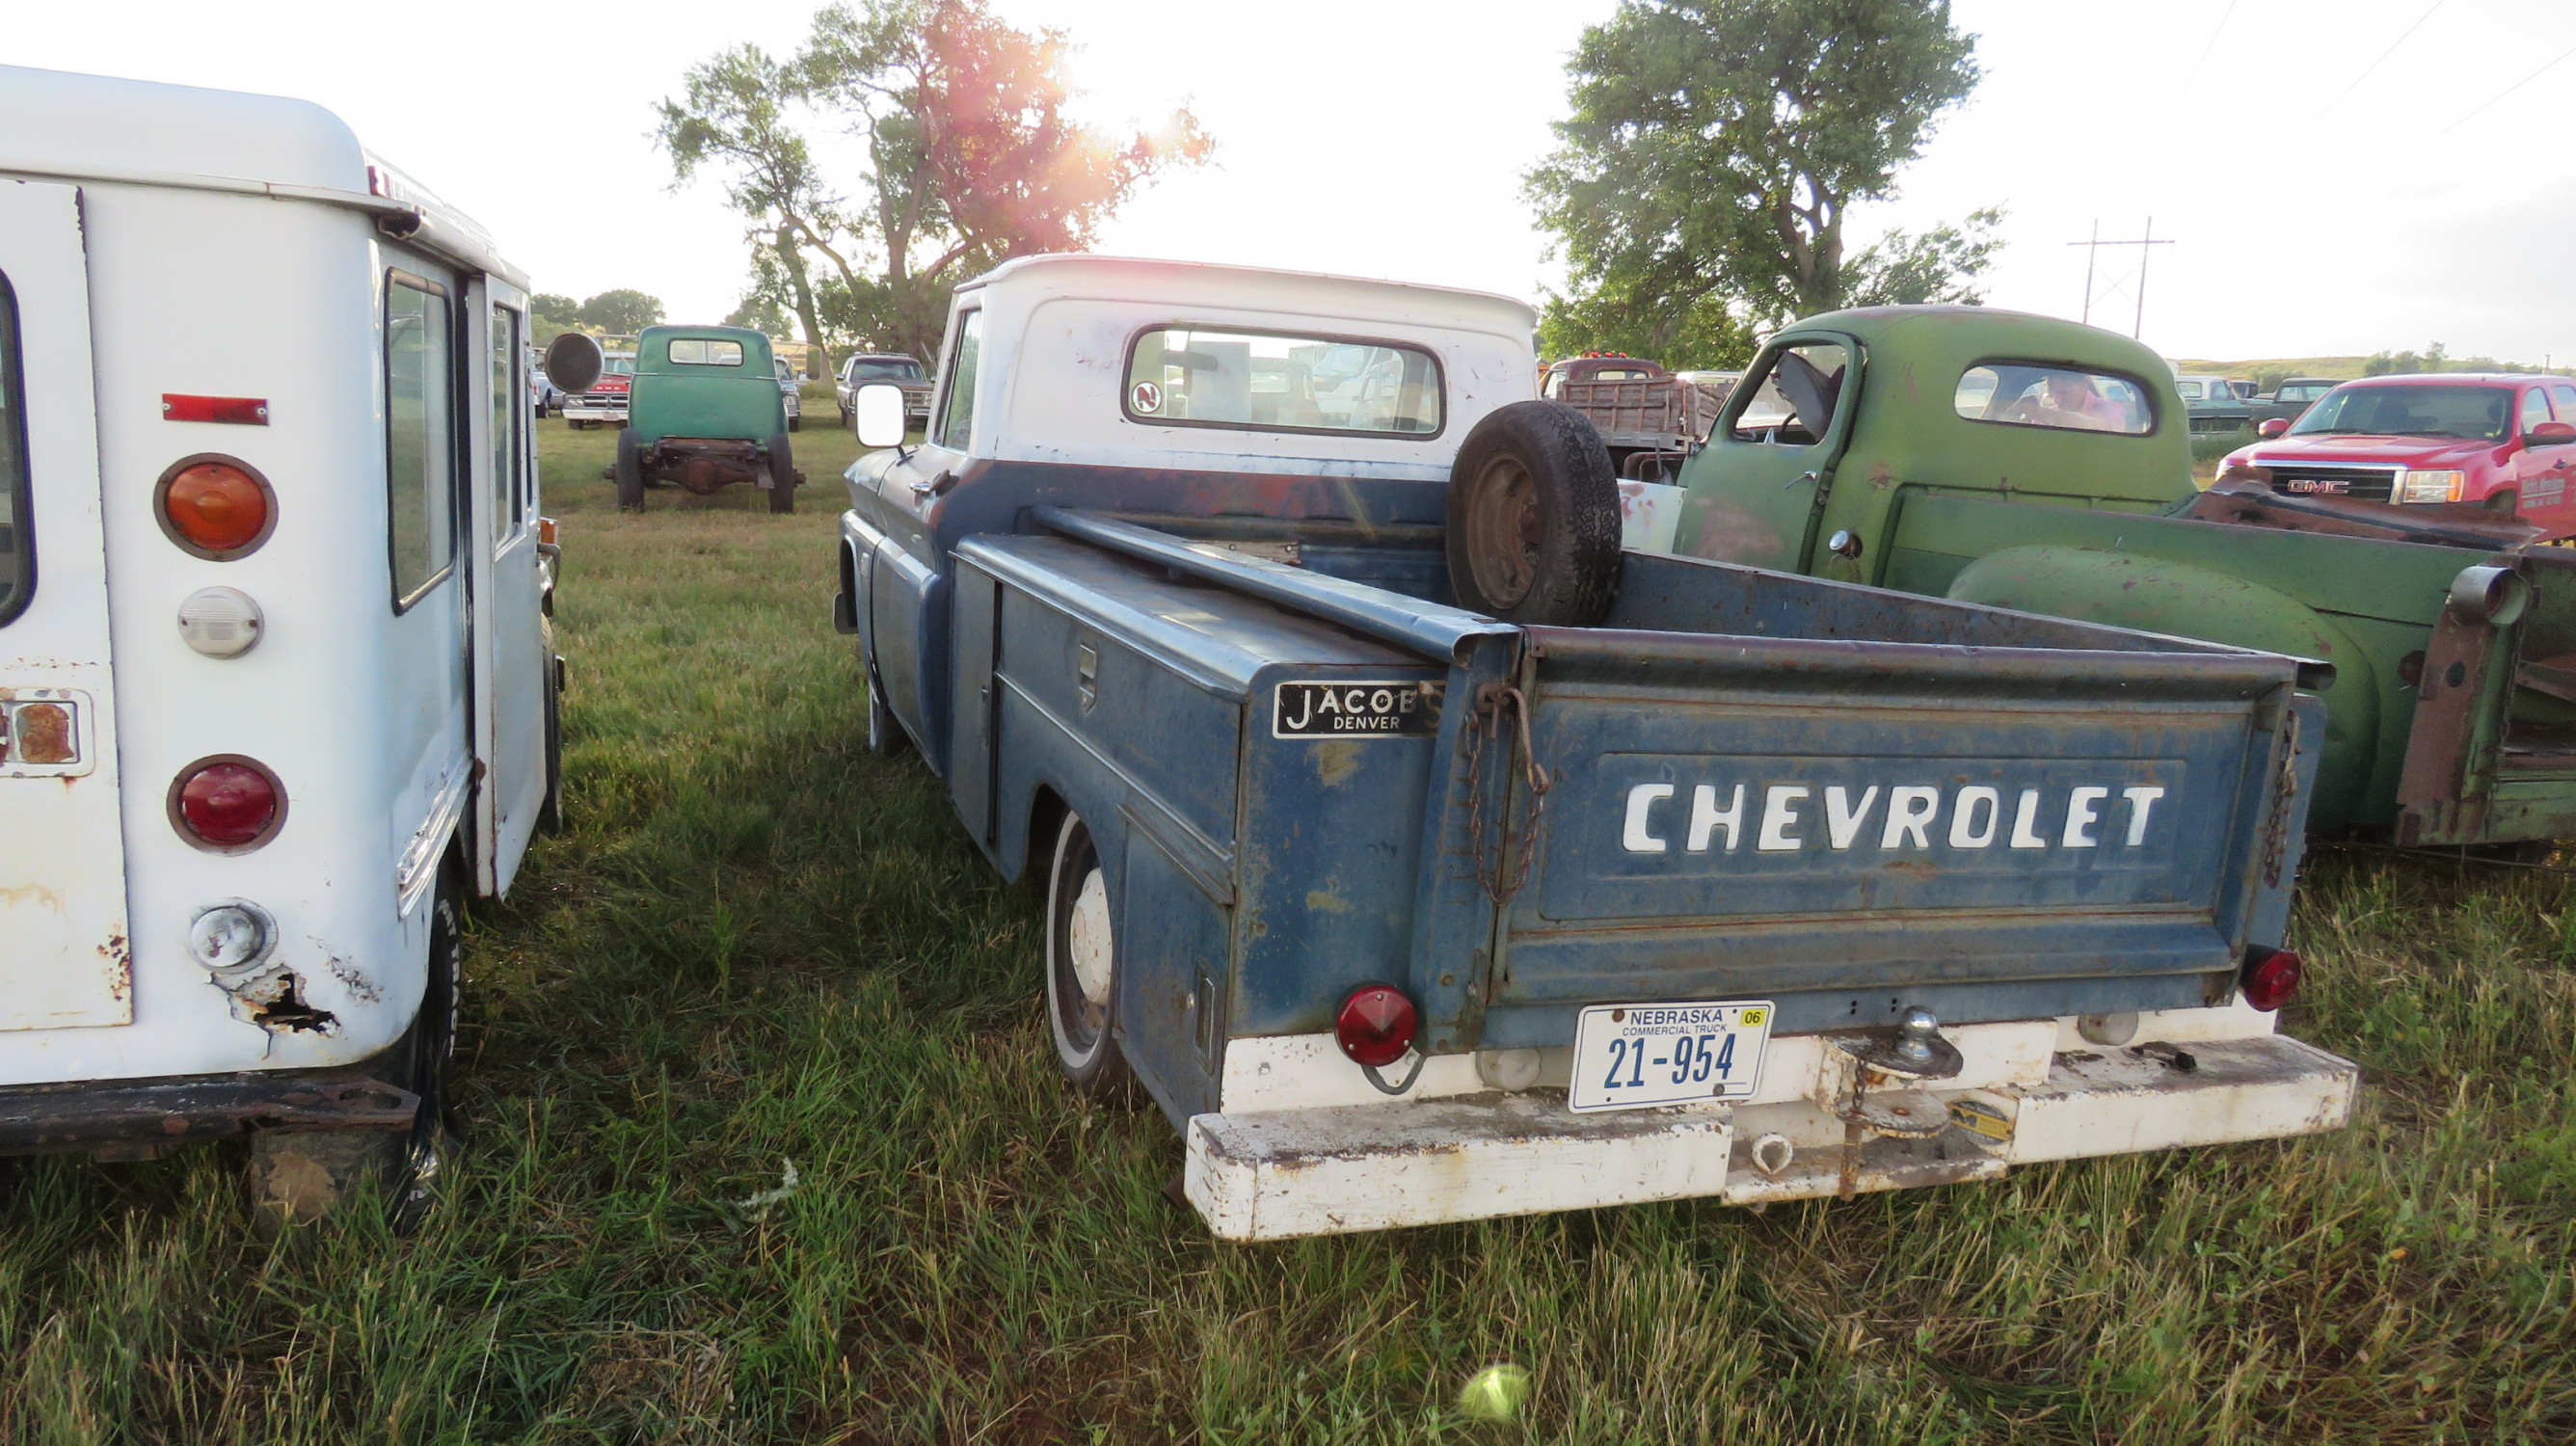 1966 CHEVROLET PICKUP - Image 5